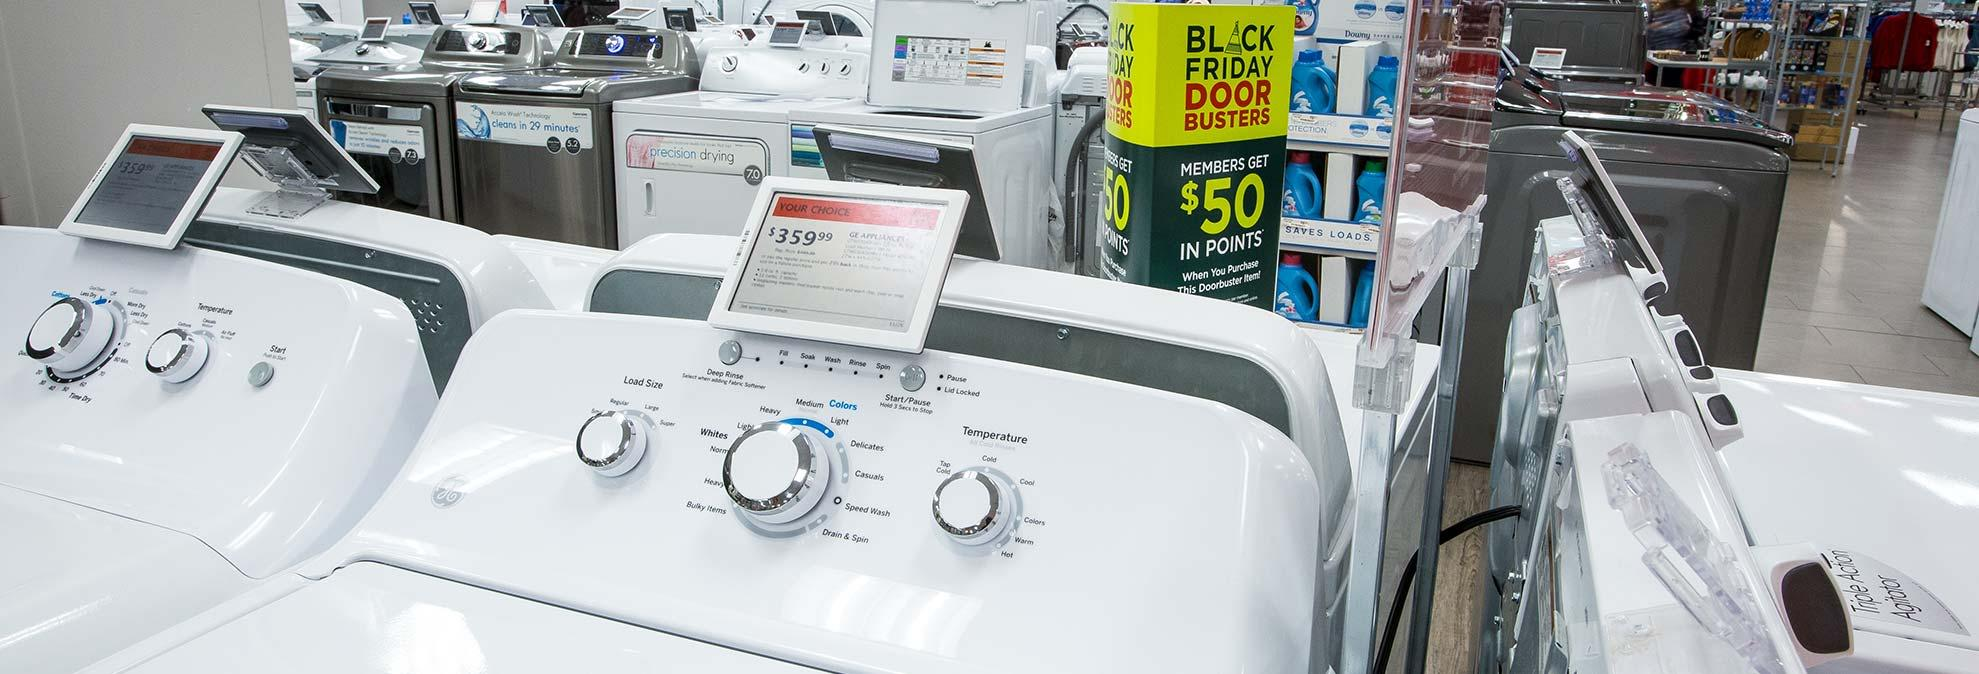 black friday deals on washers and dryers start now. Black Bedroom Furniture Sets. Home Design Ideas